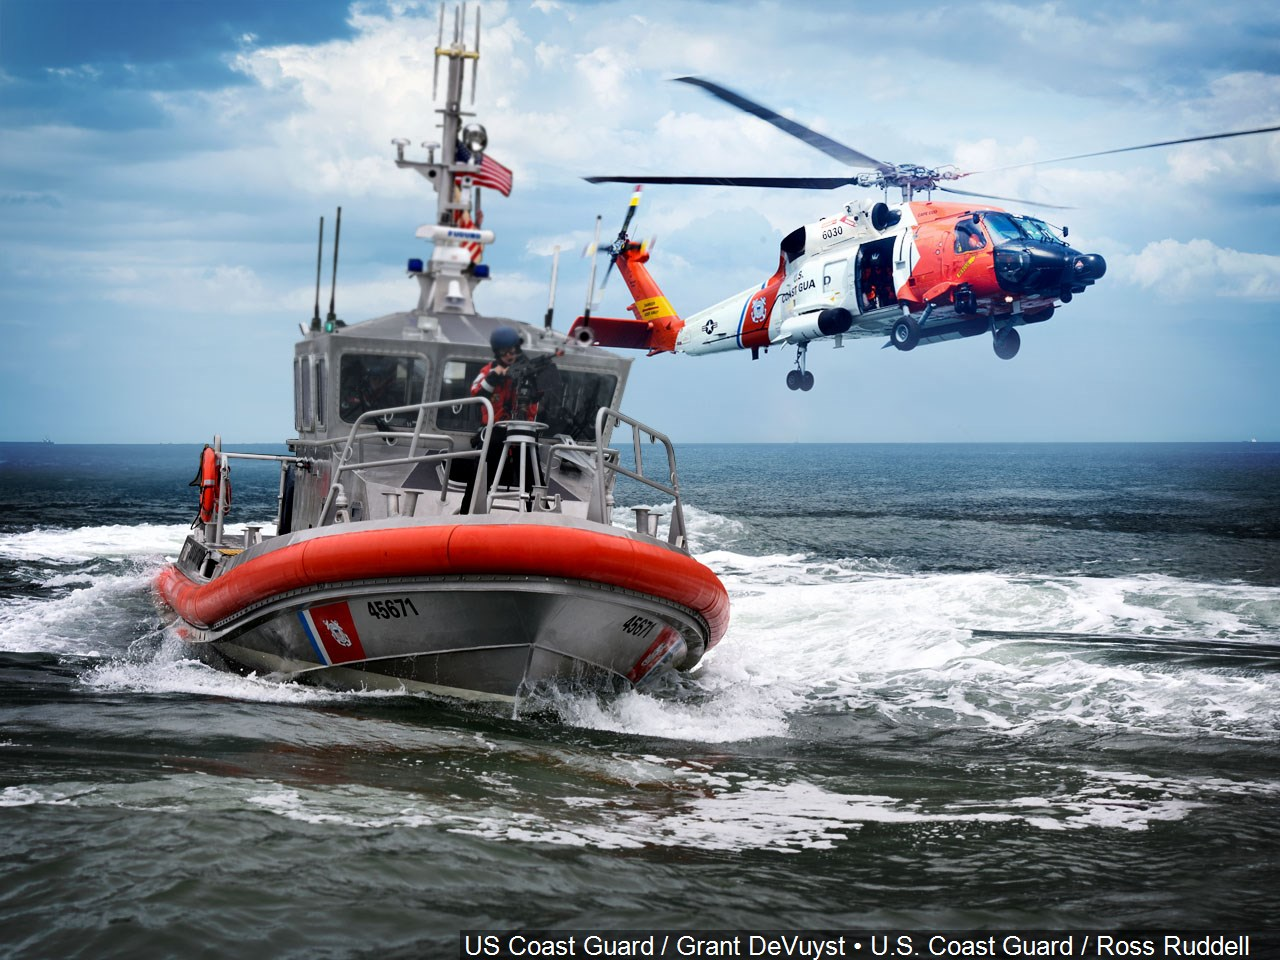 (Photo Courtesy U.S. Coast Guard/Grant DeVuyst/Ross Ruddell via MGN Online)